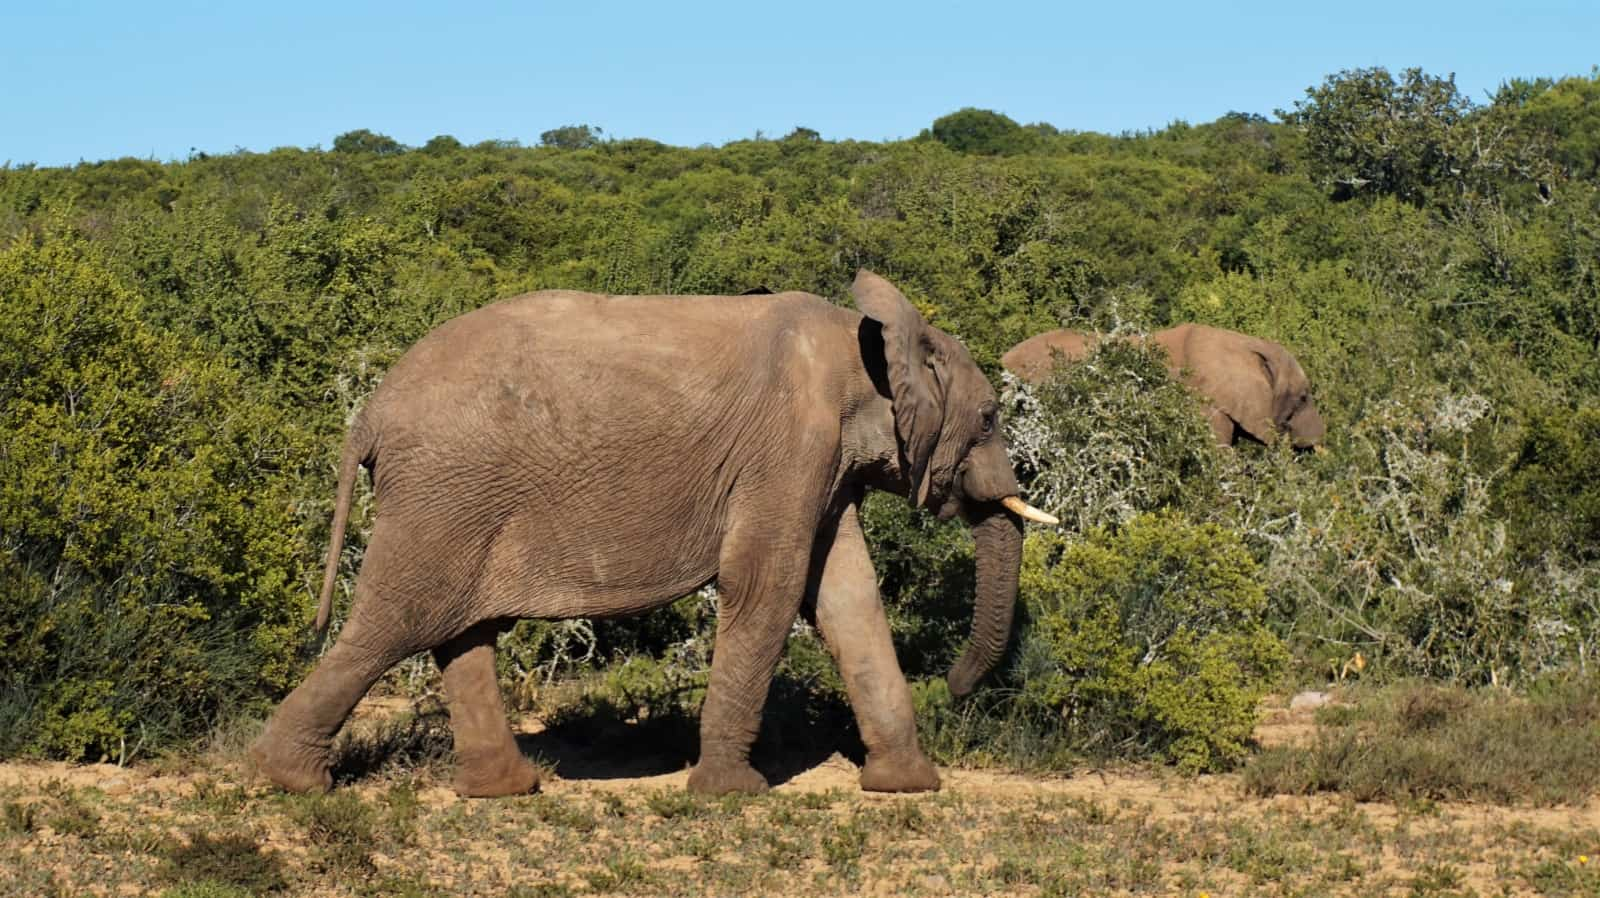 Young elephant at Addo Elephant National Park, Eastern Cape, South Africa